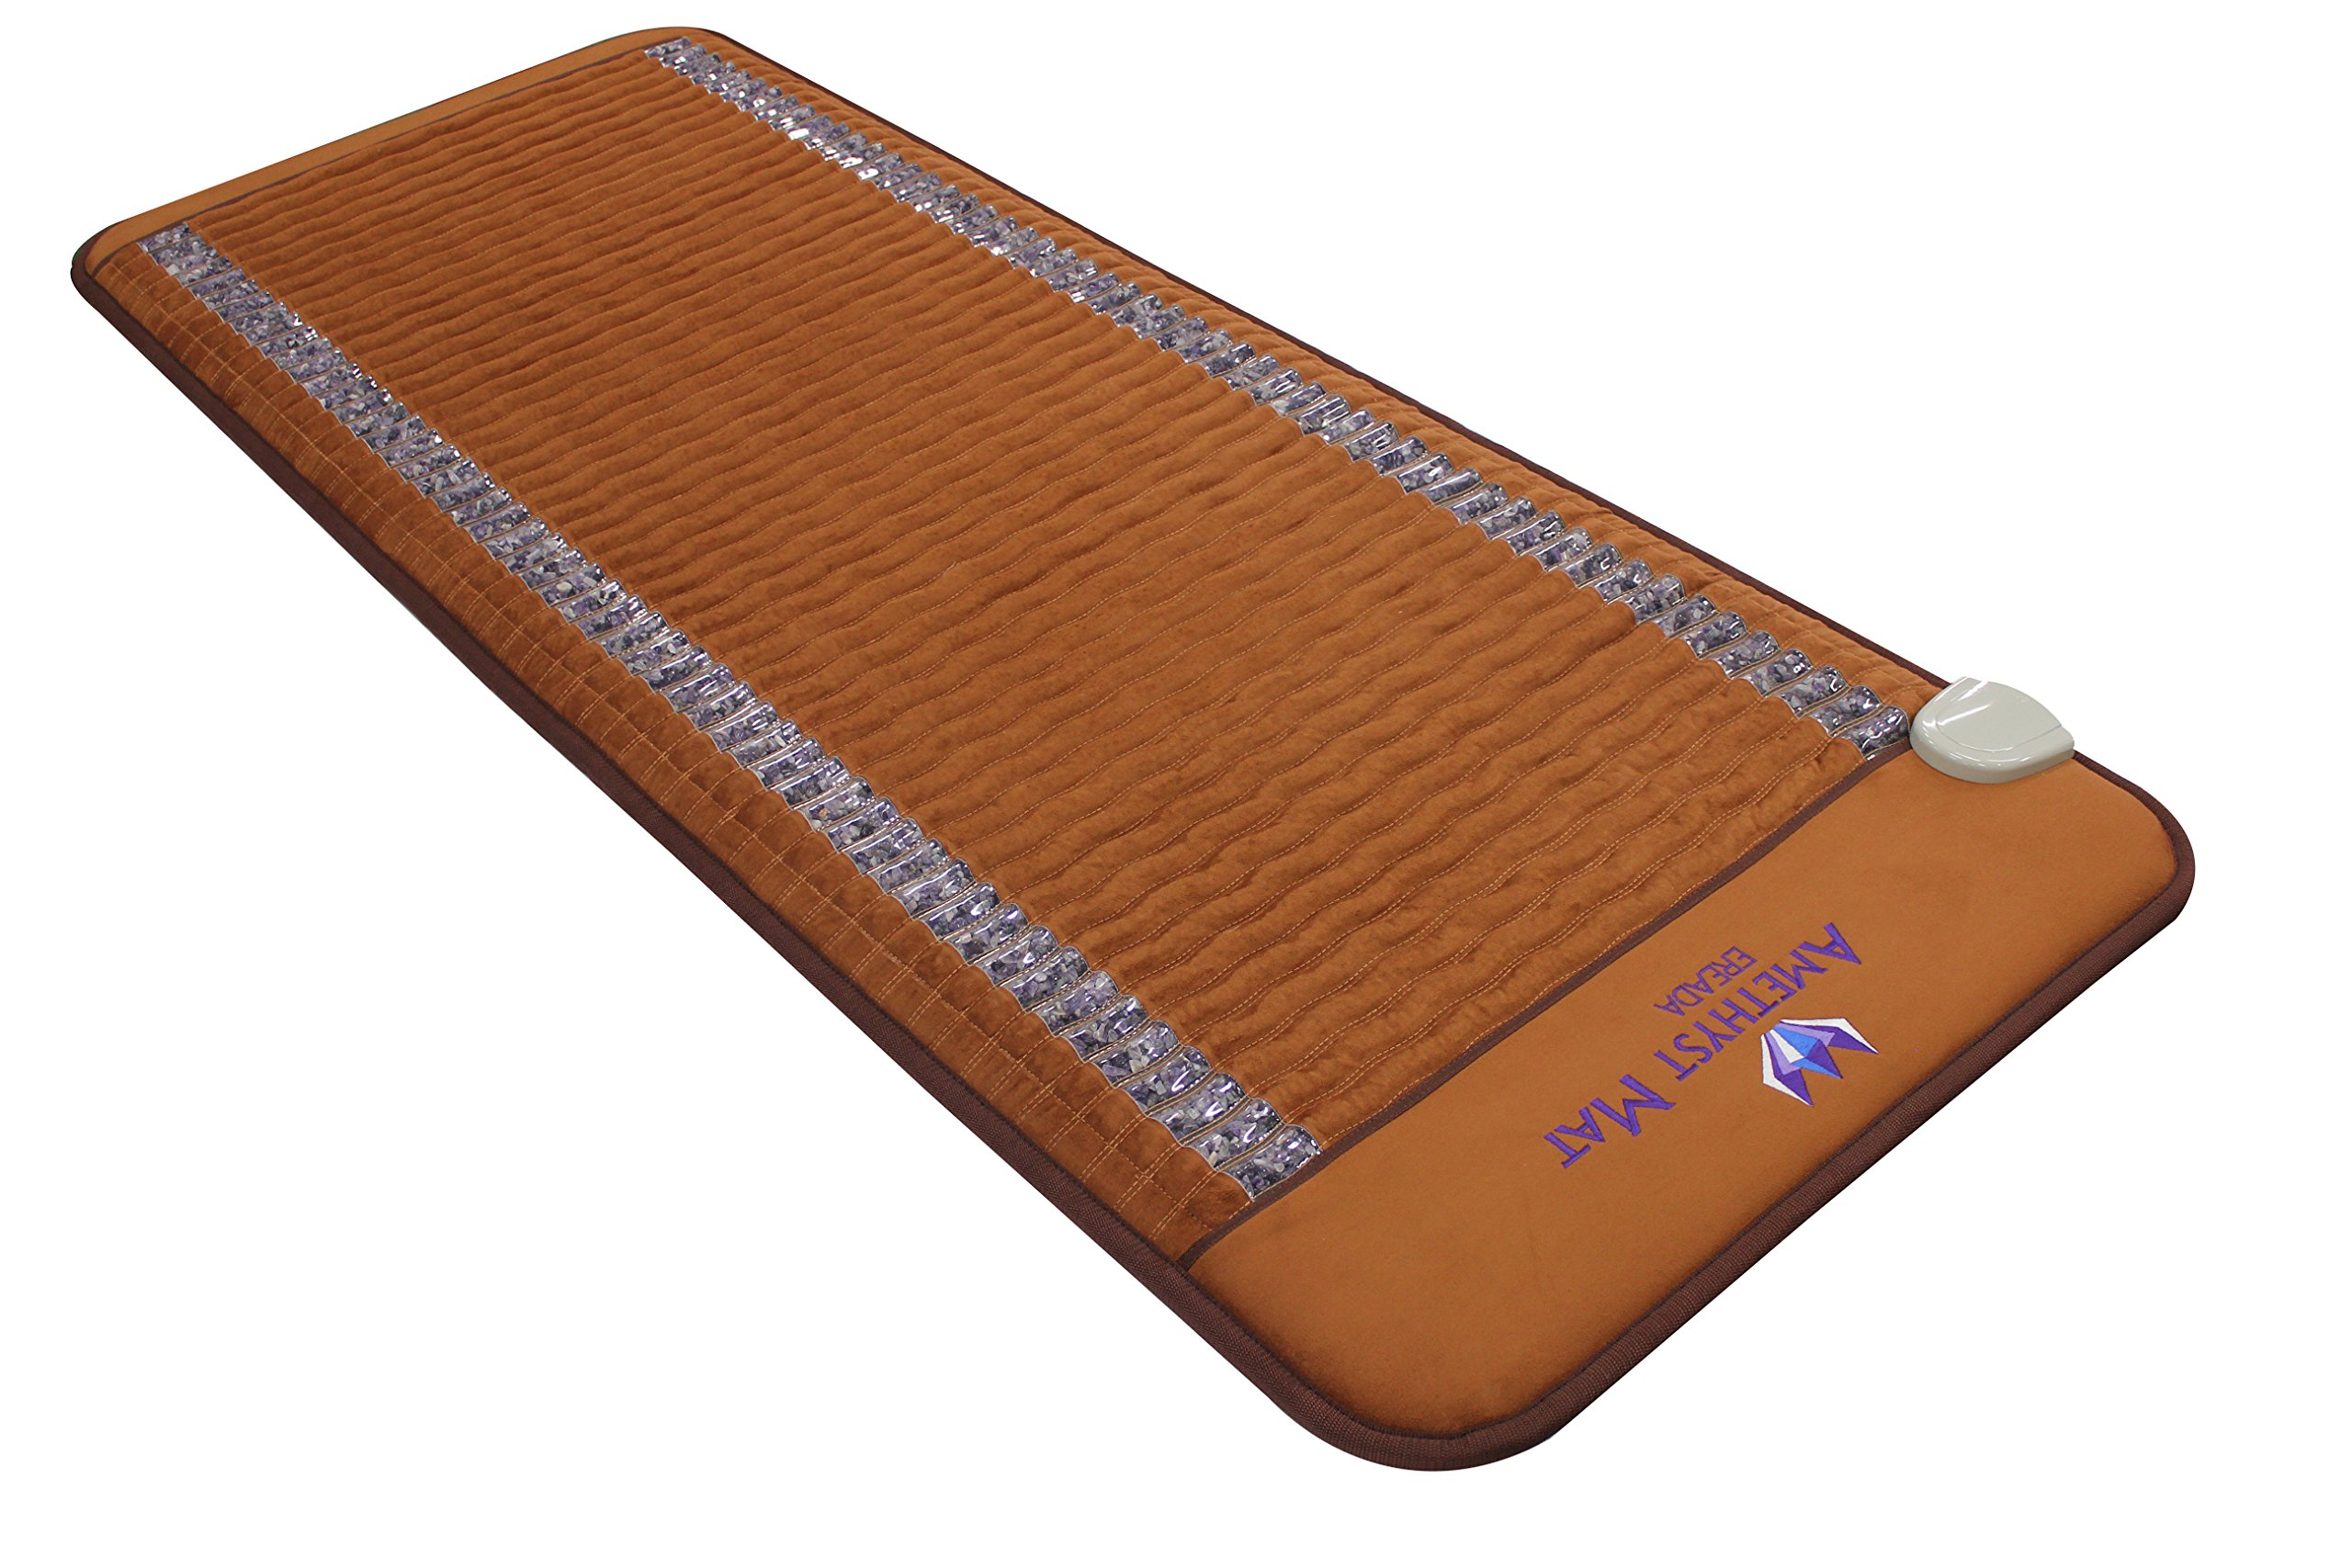 "Far Infrared Amethyst Mat Professional 73''L x 29""W - Made in Korea - Deep Penetration FIR Heat - Ion Therapy - Jewelry Grade Natural Amethyst - FDA Registered Manufacturer - Heating Pad with Crystals by Bio Amethyst"